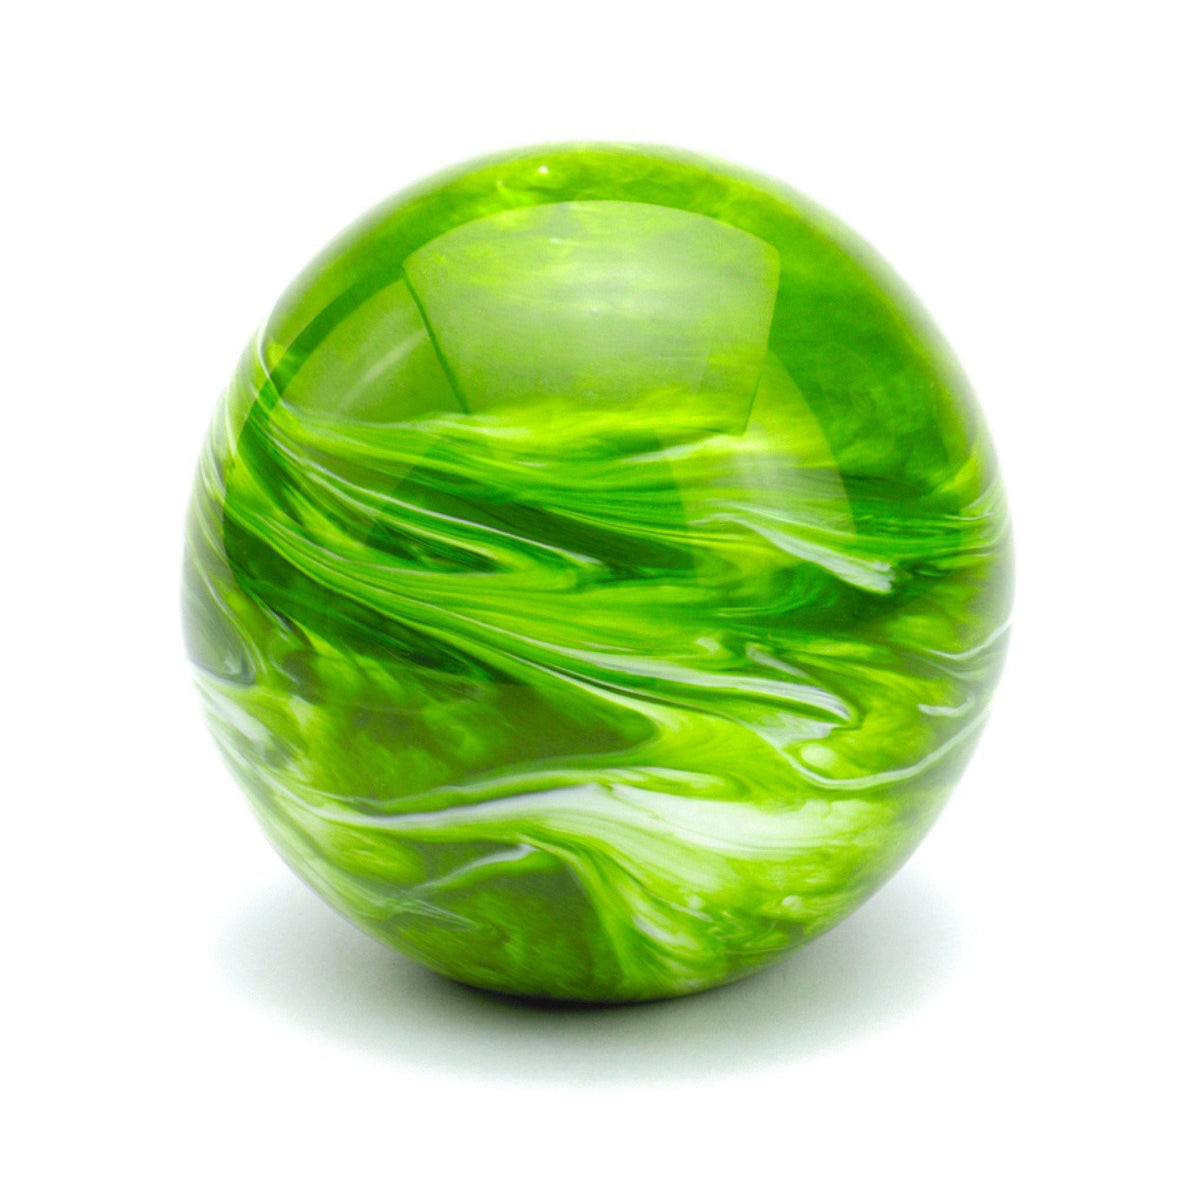 Malton Marble Green Glass Cremation Ashes Urn - Urns UK